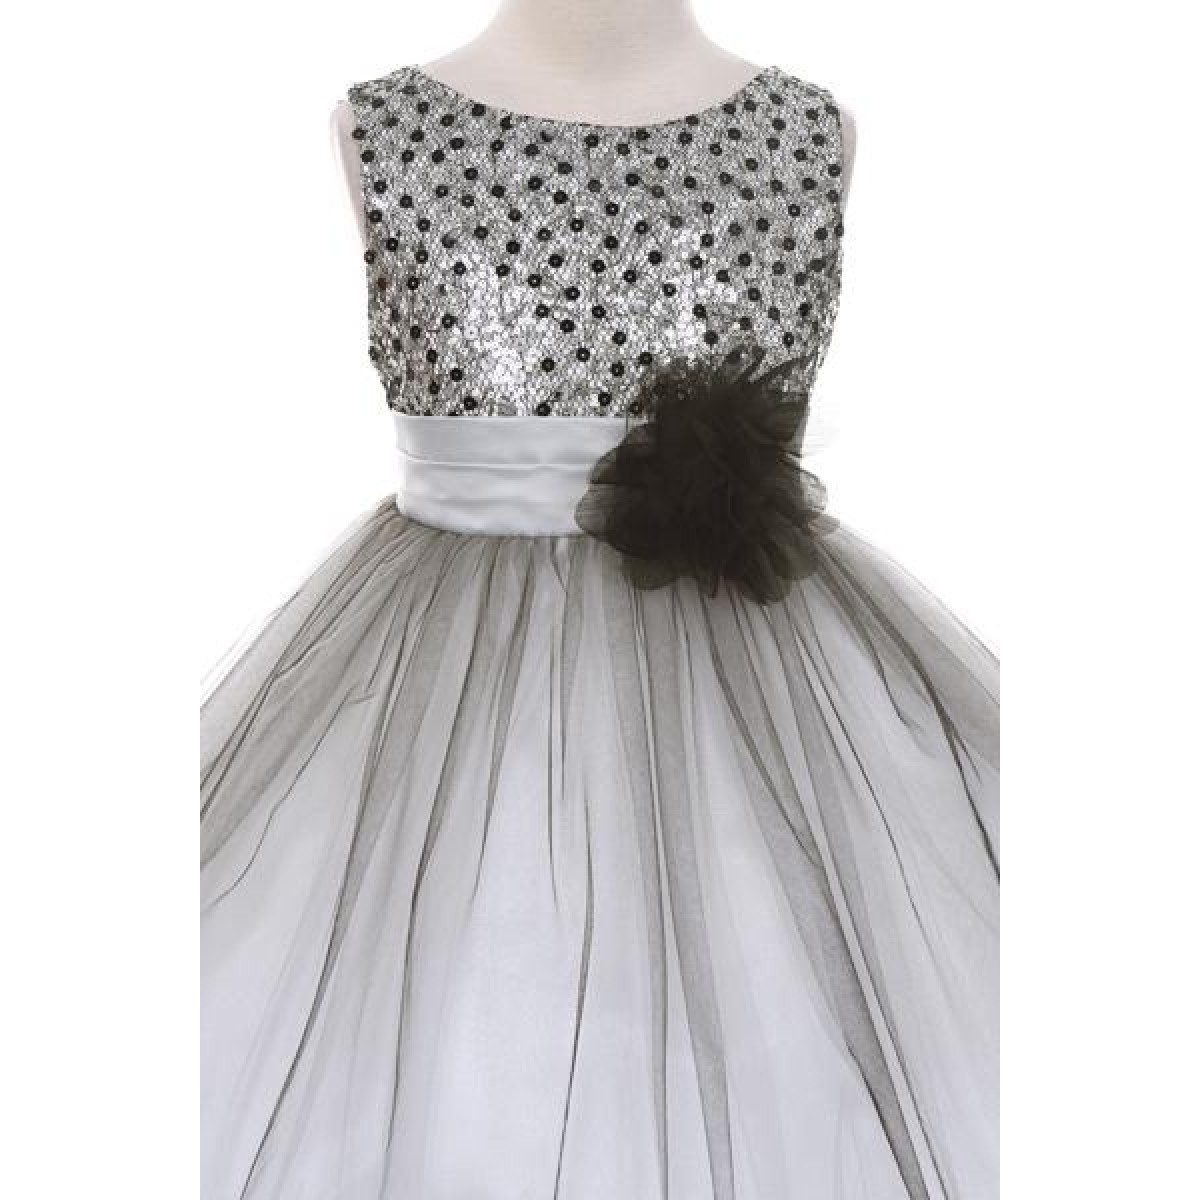 ad69d6db7252 pretty cheap 4238a 2c4f1 a silver sequin dress with a full tulle ...